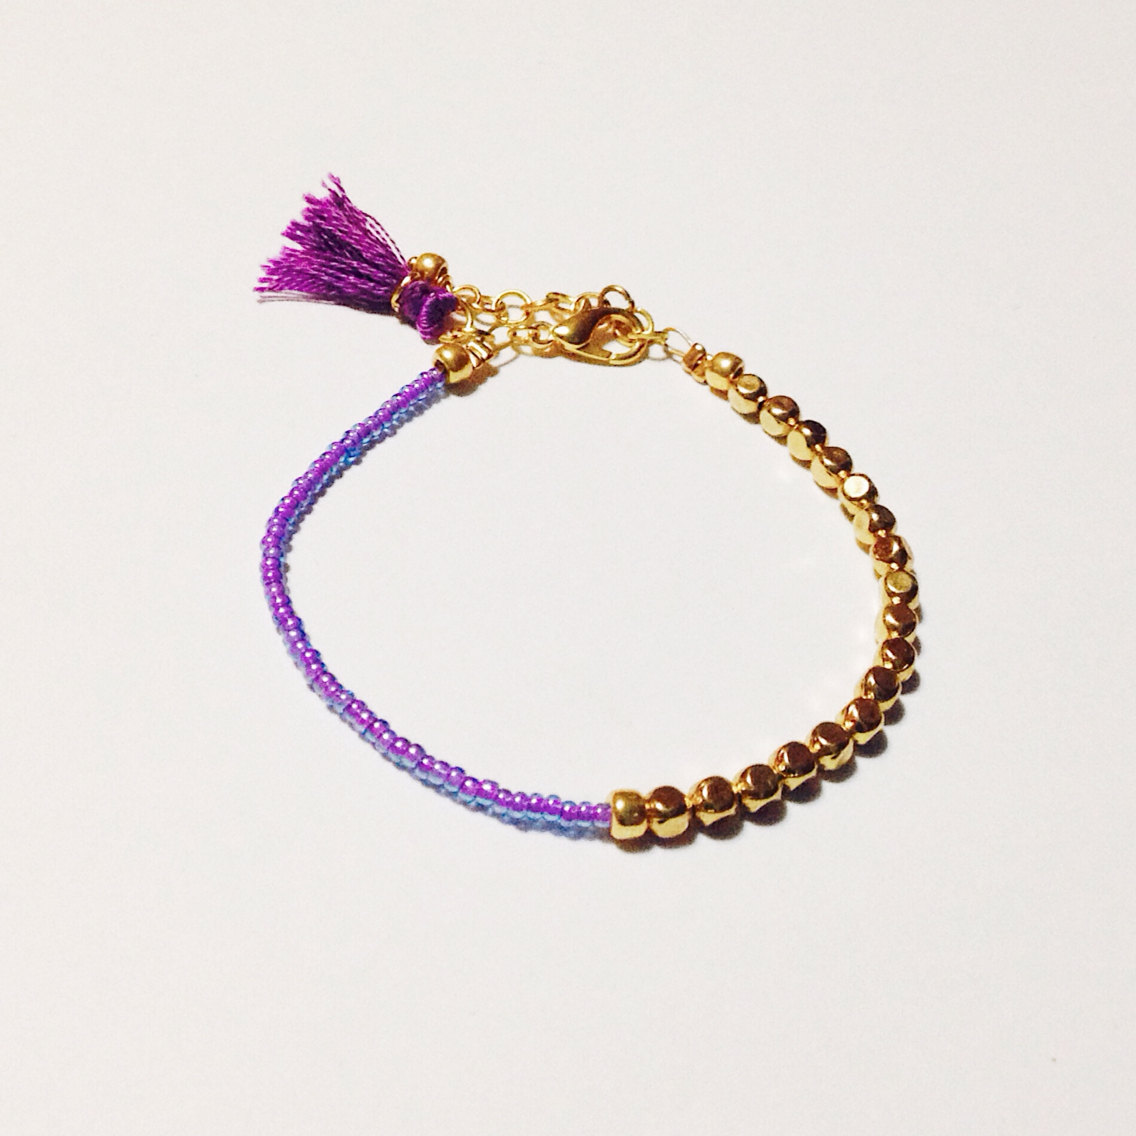 Friendship beaded bracelet, tassel bracelet, purple bracelet